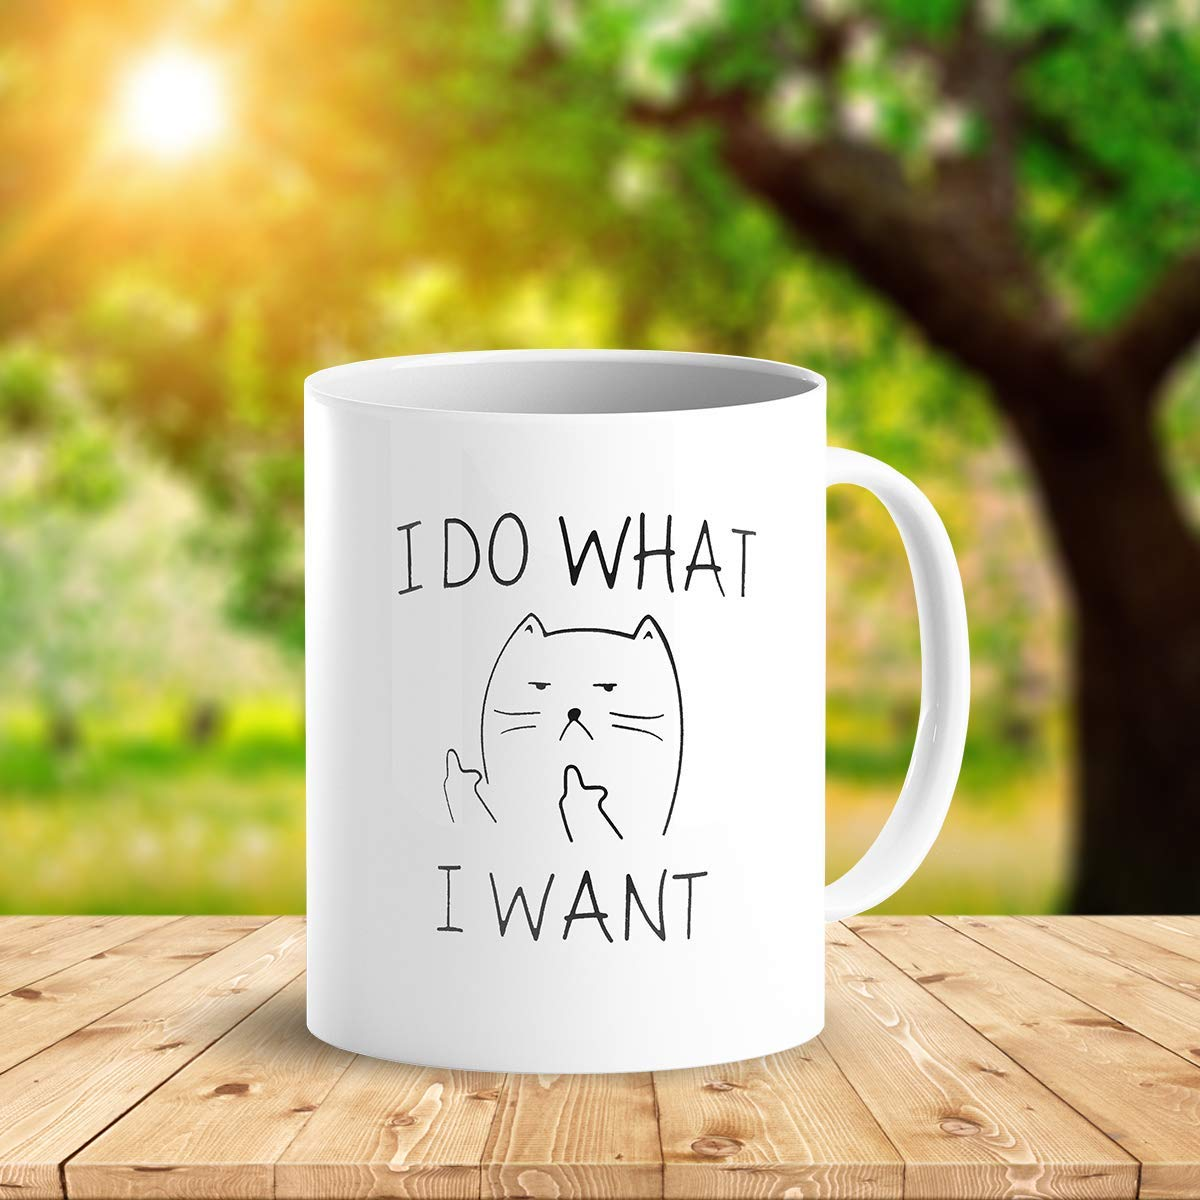 I Do What I Want Funny Coffee Mug Cat Middle Finger 11 Oz Birthday Gift For Men Women Him Or Her B079FX31TX 4